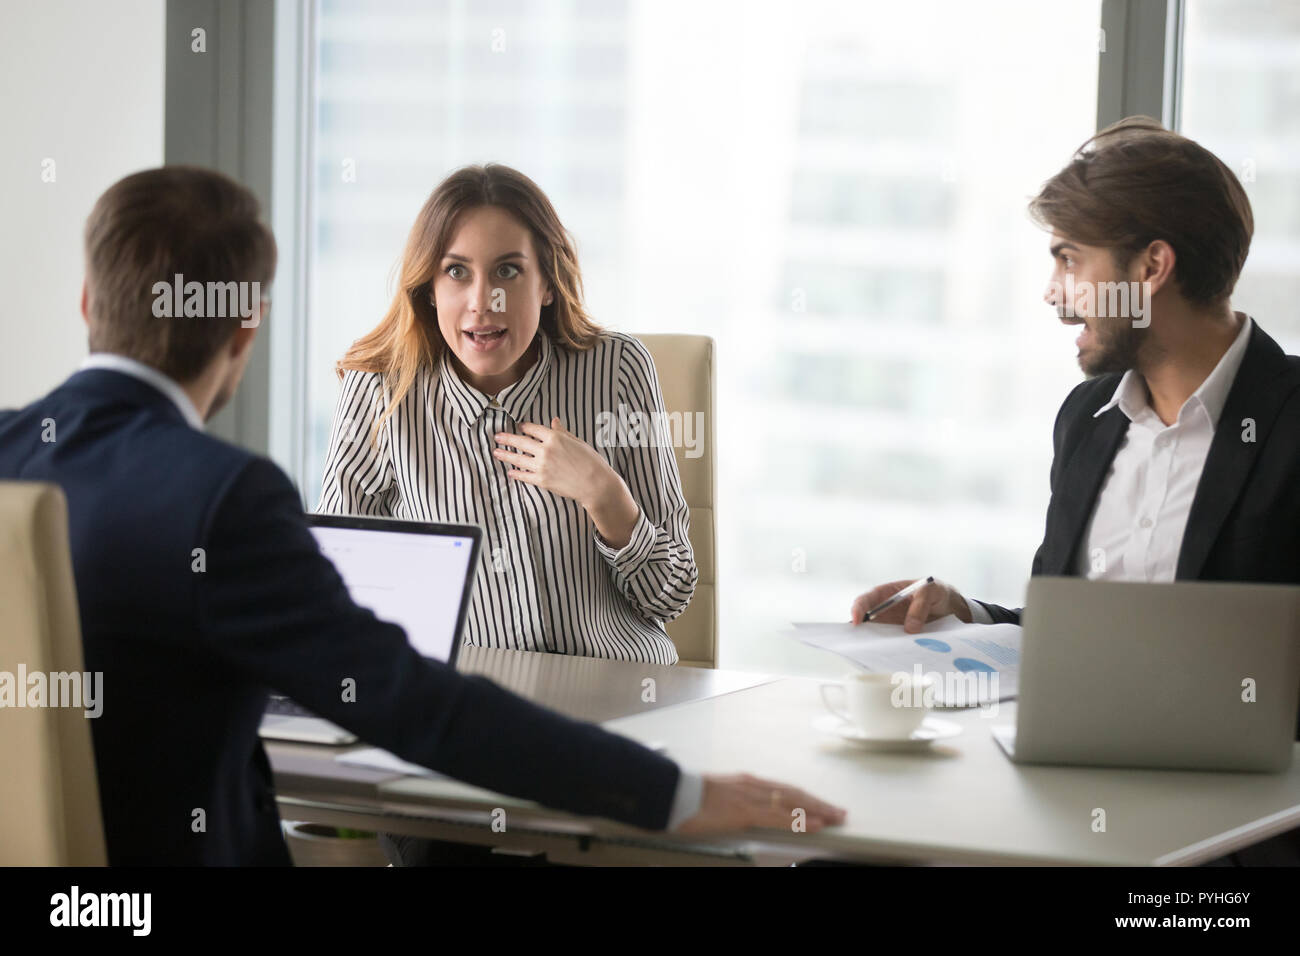 Angry man shouting at indignant female colleague. - Stock Image